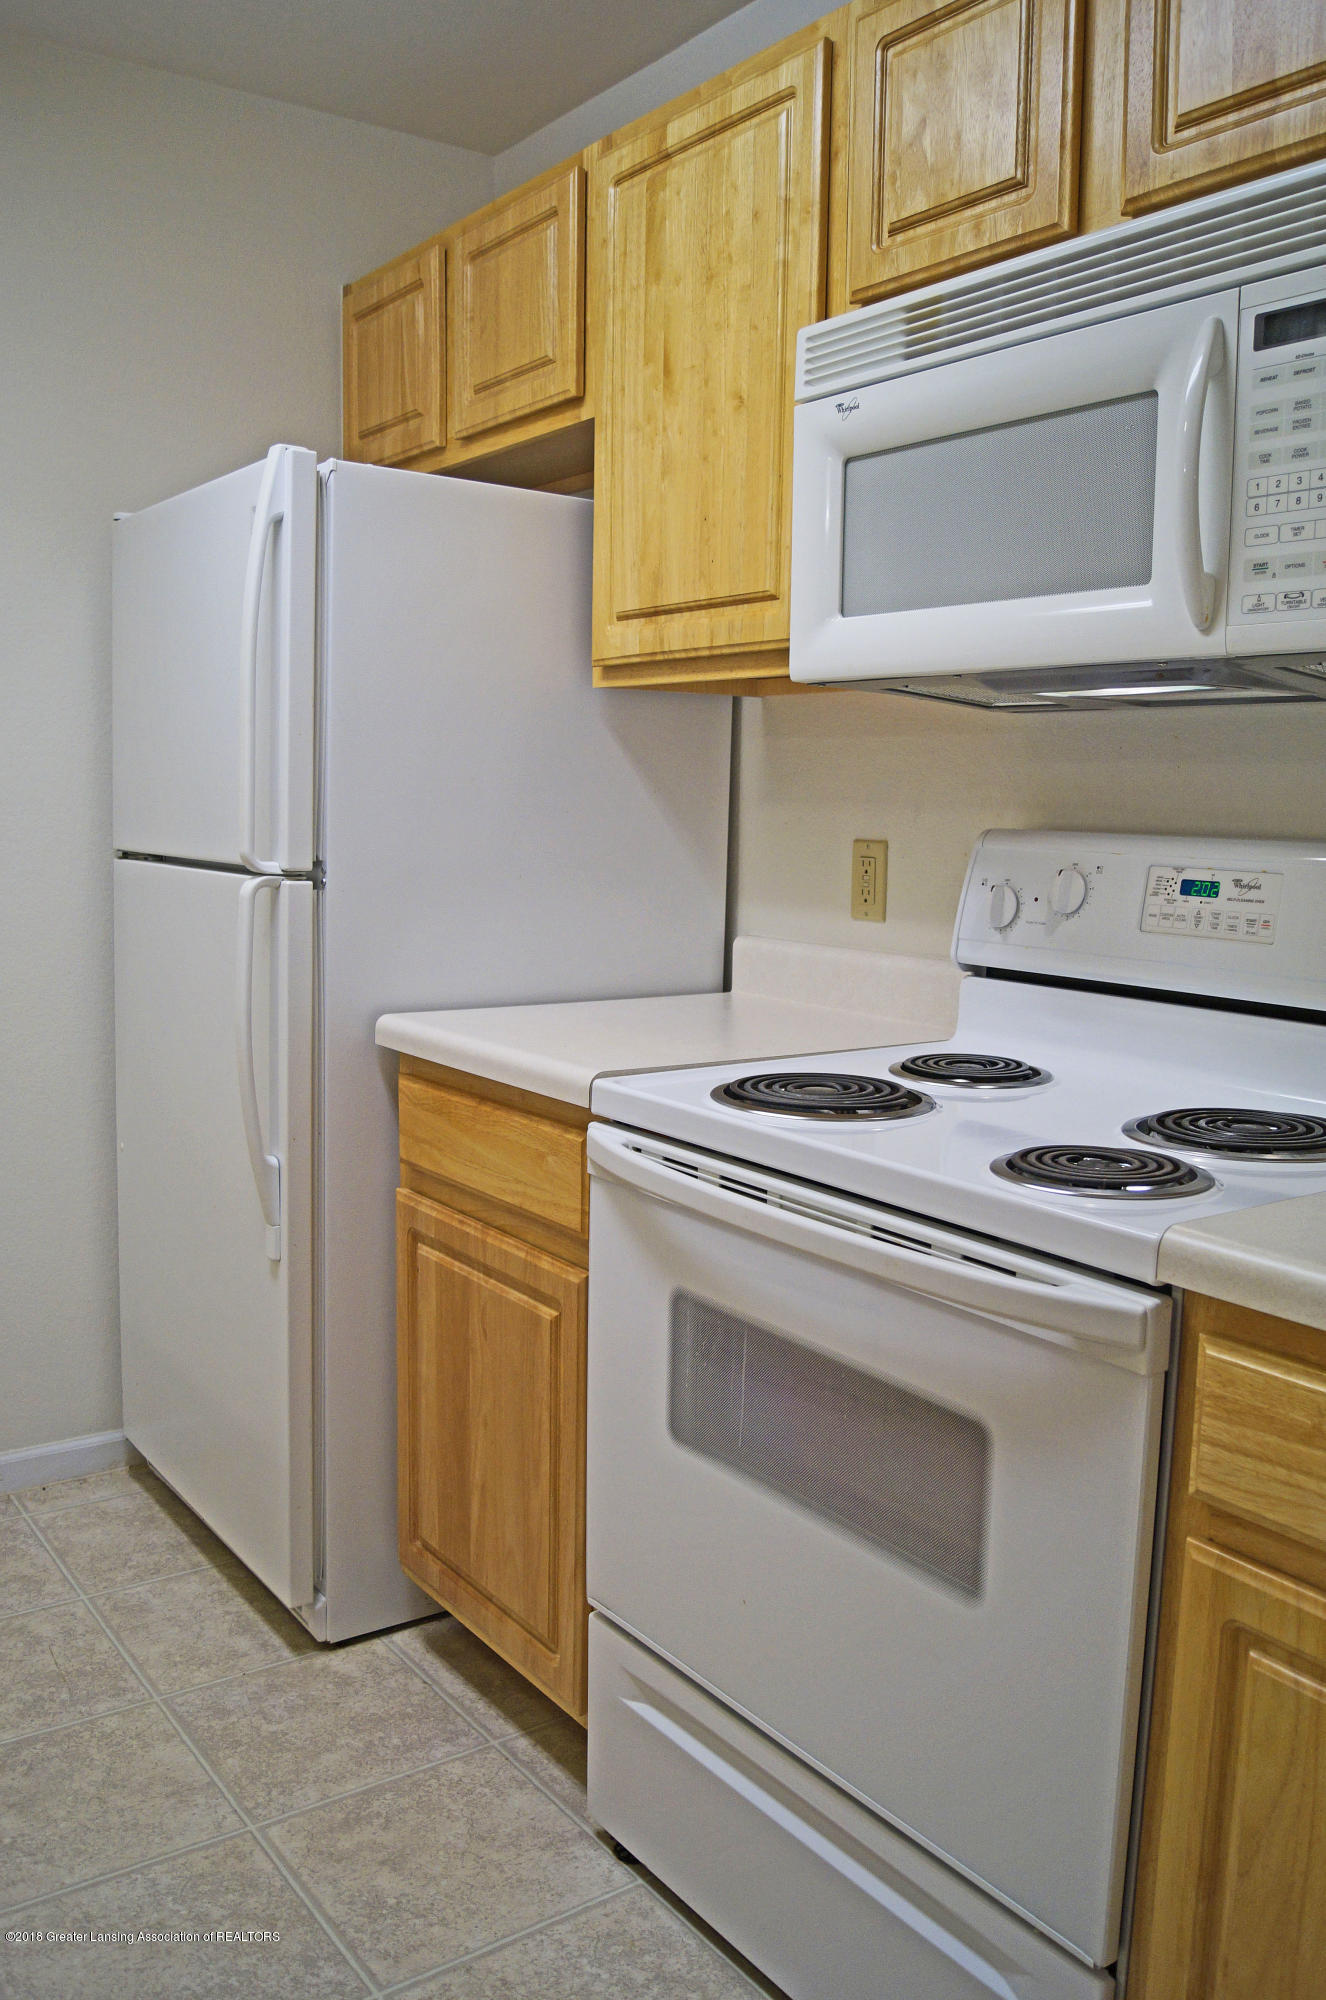 338 W Saginaw St UNIT 9 - Kitchen - 8